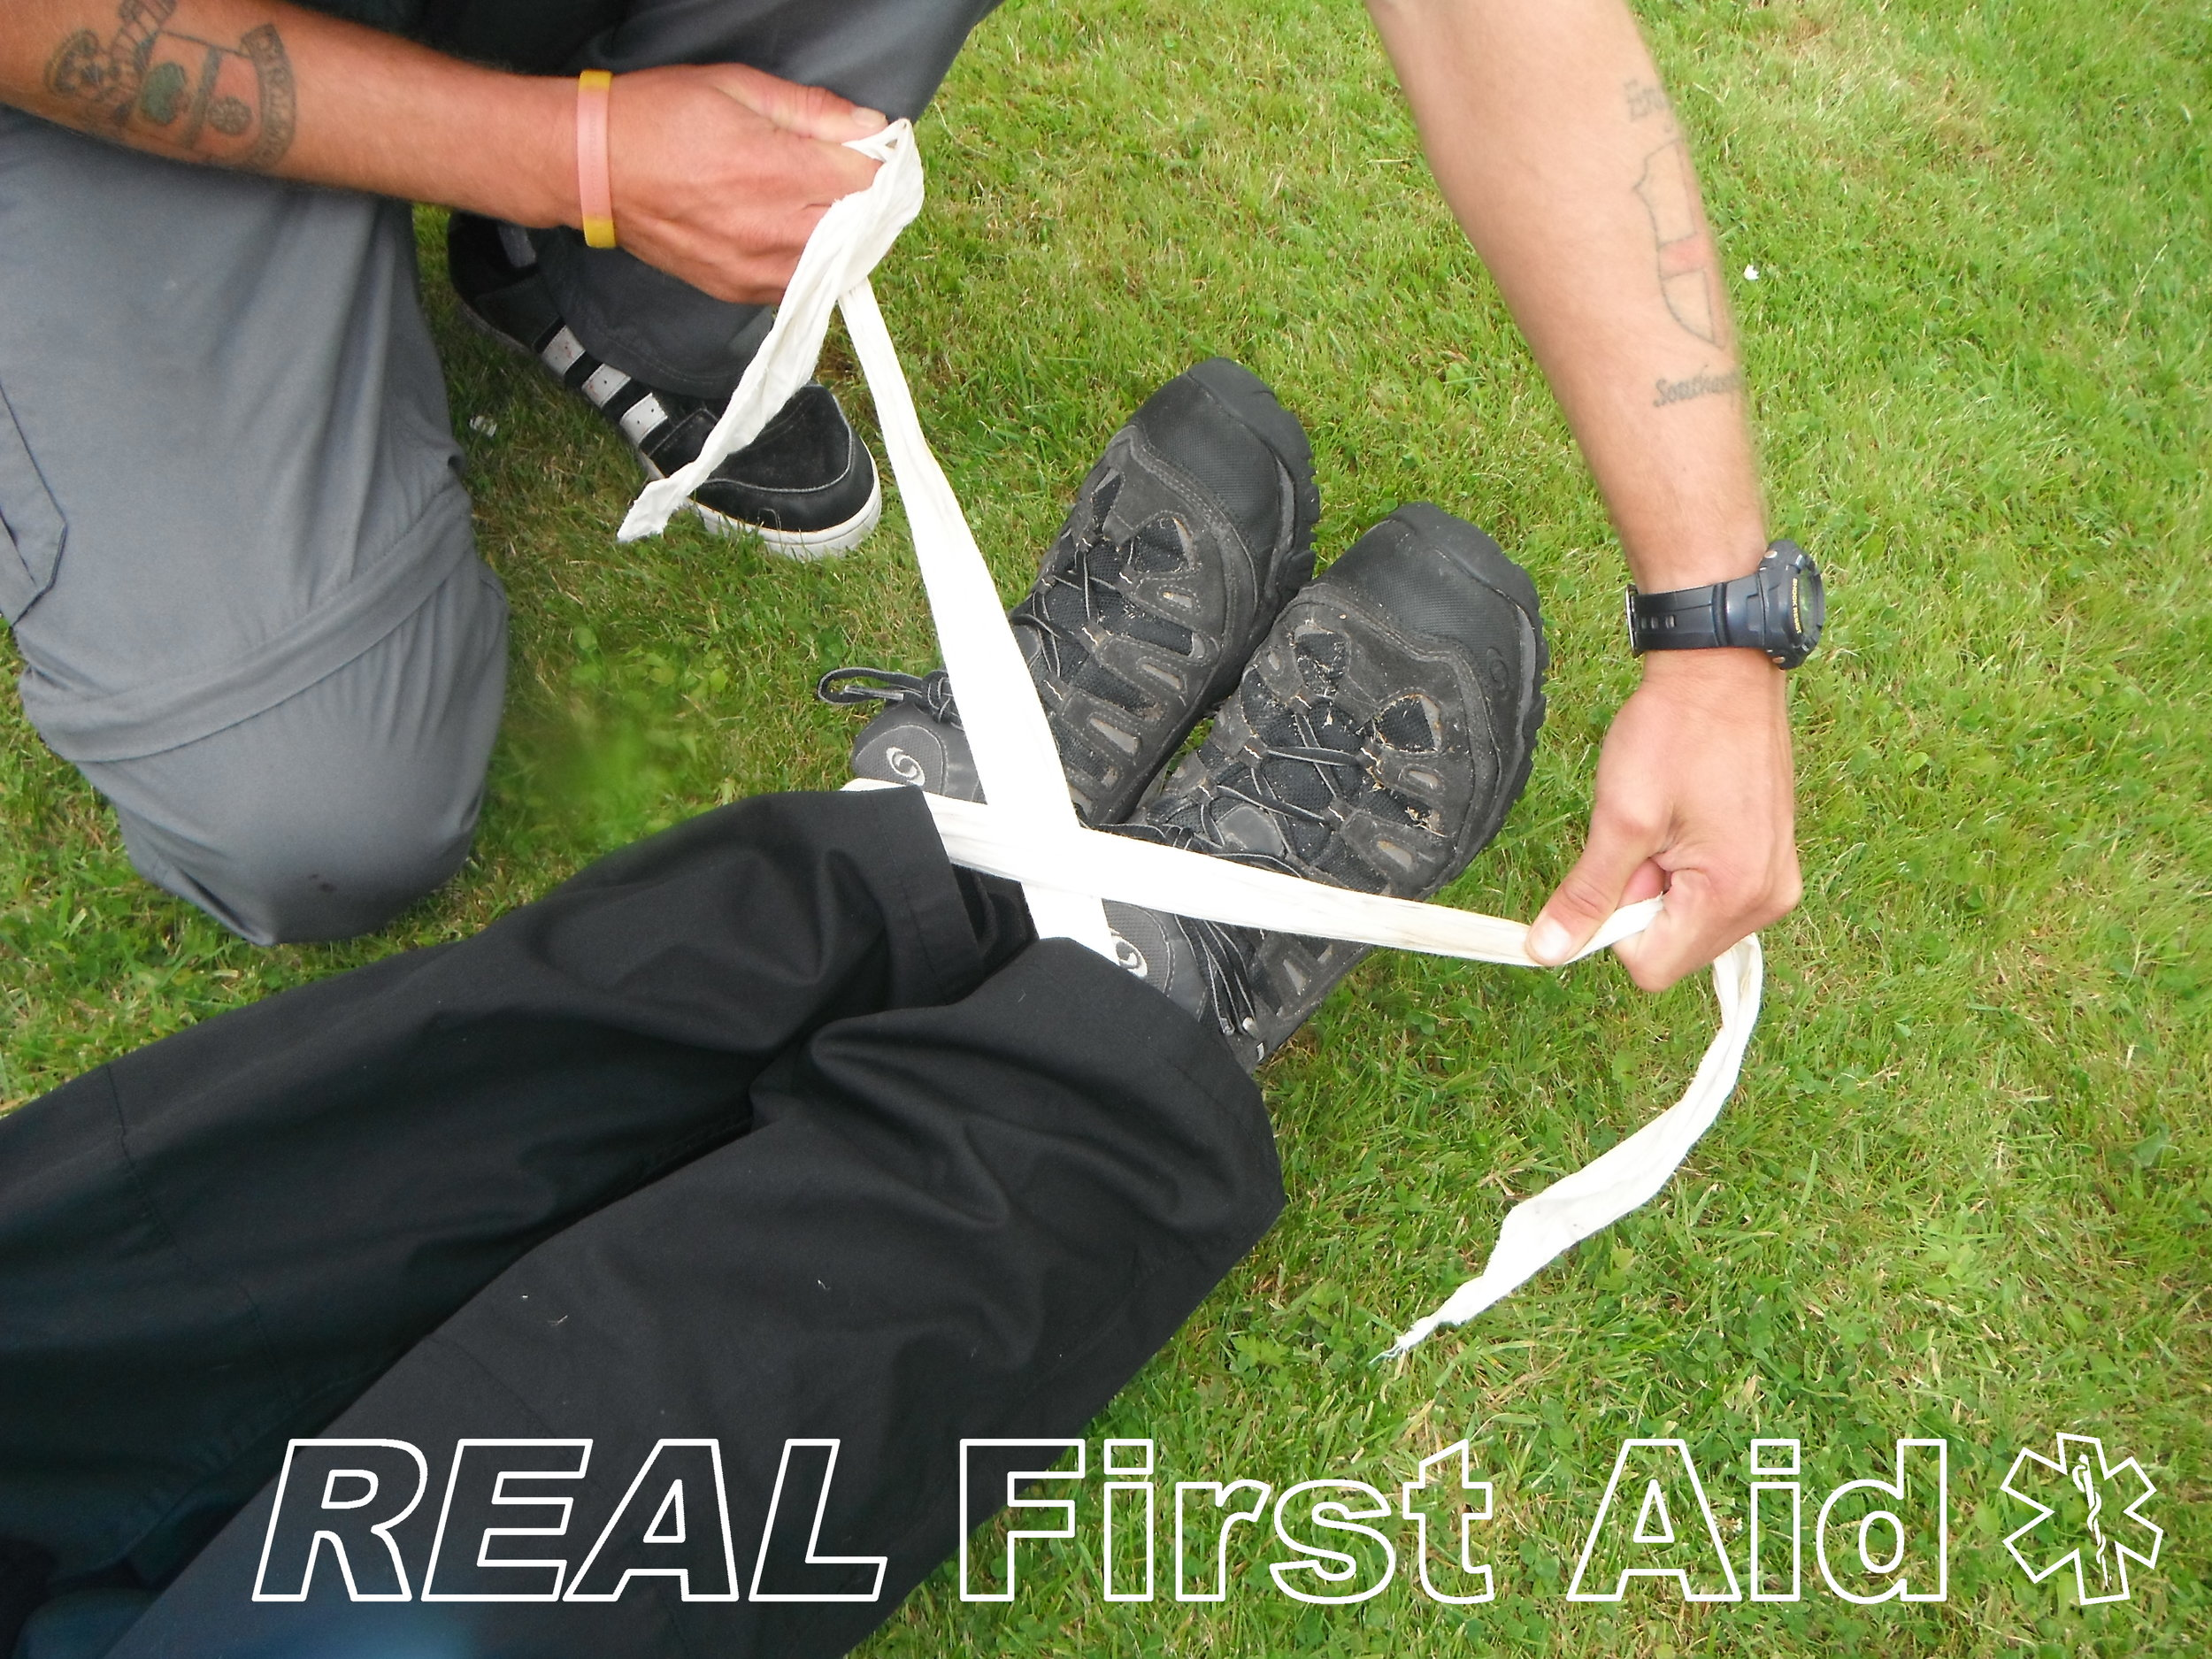 1. Using a triangular bandage or alternative (tape, cord, belt etc) tie the casualty's ankles together; this is most comfortably and stably achieved applying a 'figure of eight' around the back of the casualty's ankles, across their shoe laces and tied off underneath their feet.  Tying the ankles together bring in the feet which prevents outwards rotational forces on the pelvis.